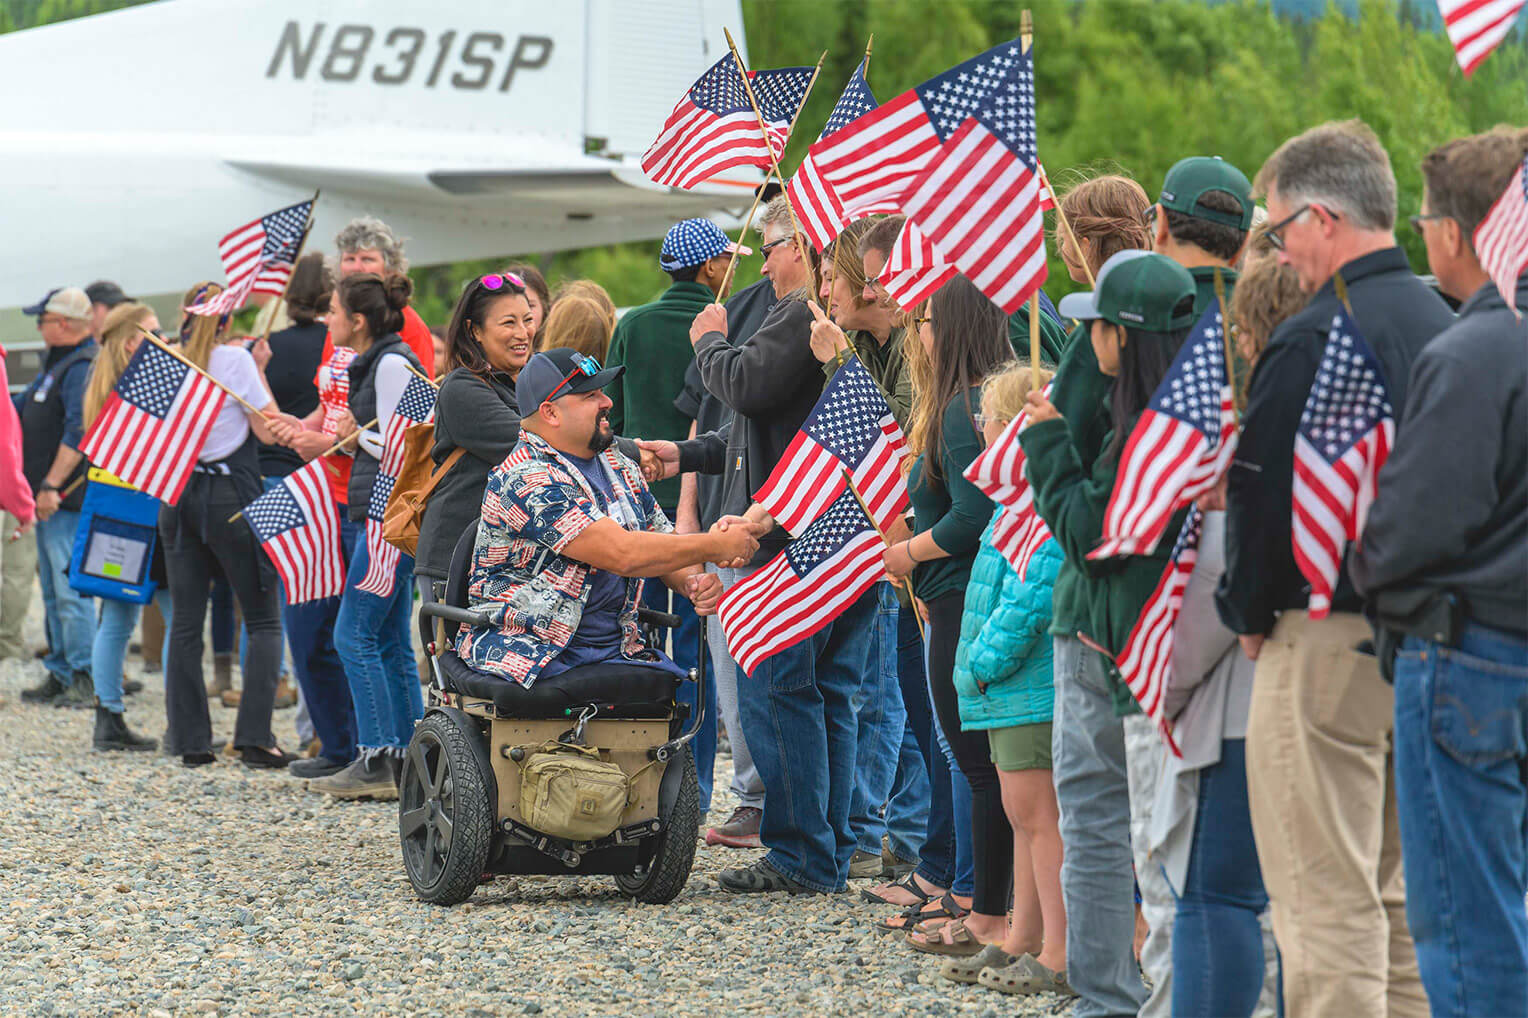 Marine Gunnery Sergeant TJ Tejada and his wife, Veronica, arrive on the Fourth of July for a week of marriage enrichment in Alaska through Operation Heal Our Patriots, a project of Samaritan's Purse.